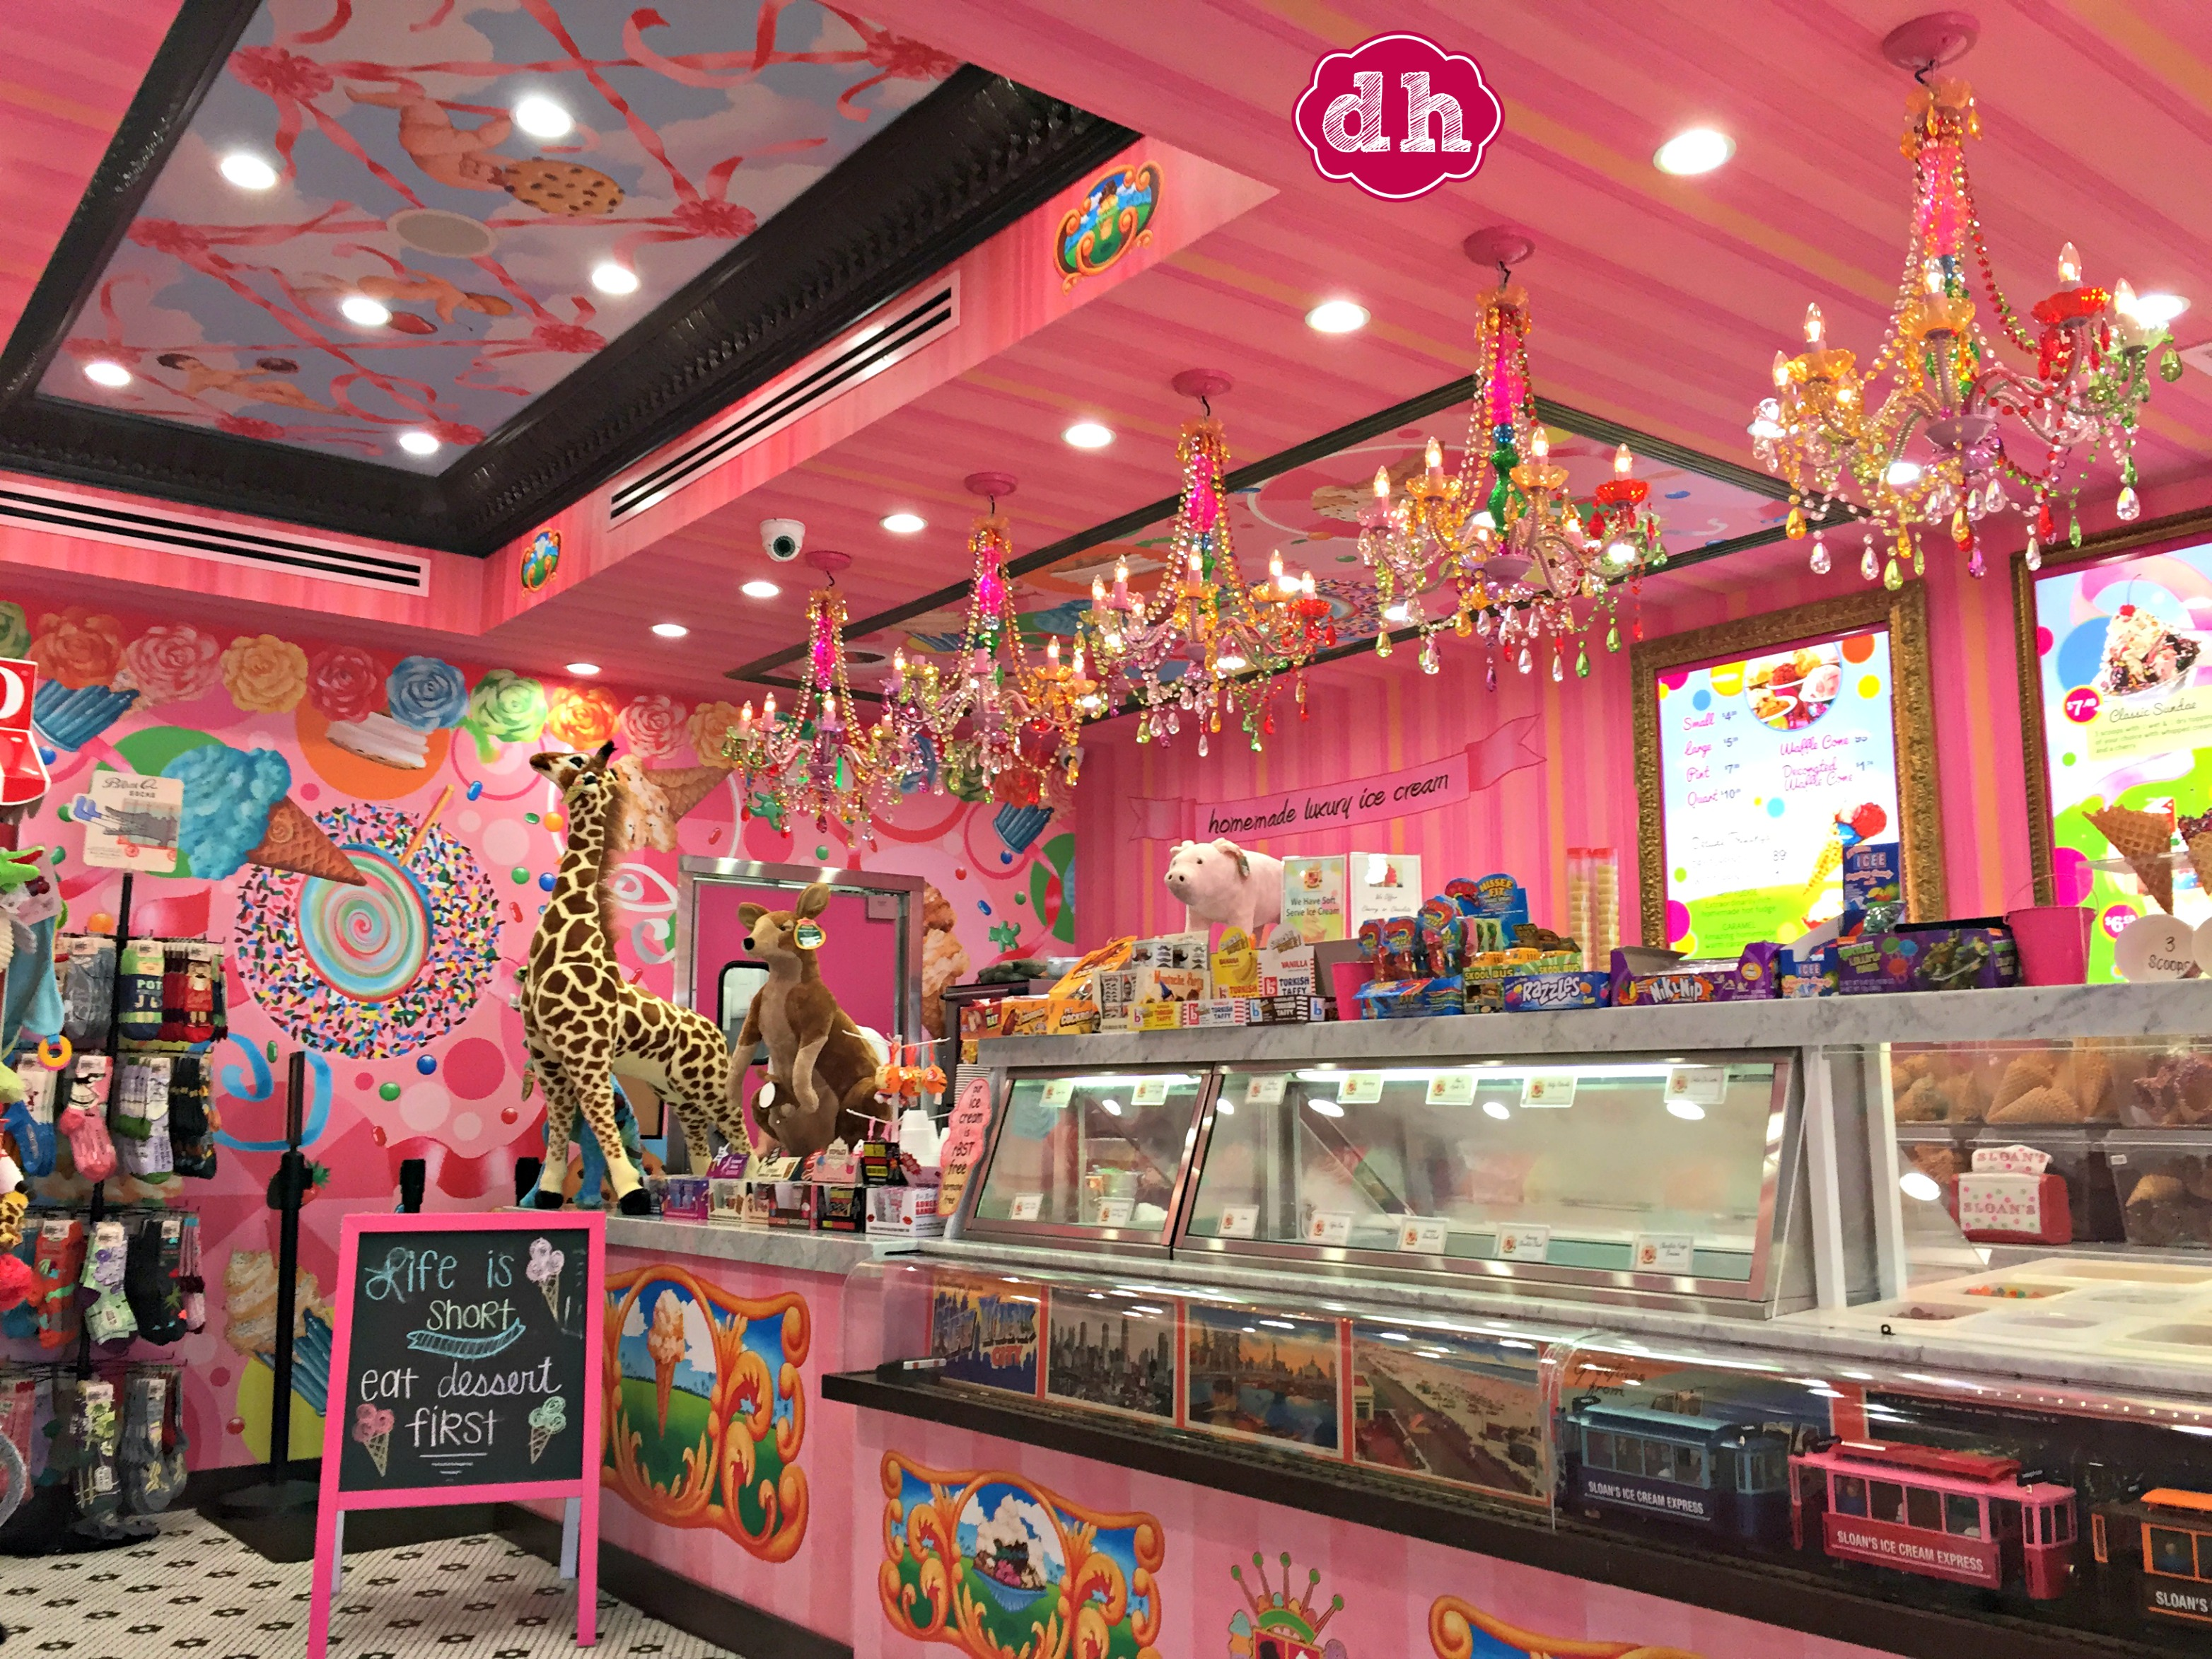 Life is Short, Eat Dessert First ... at Sloan's Ice Cream Shop